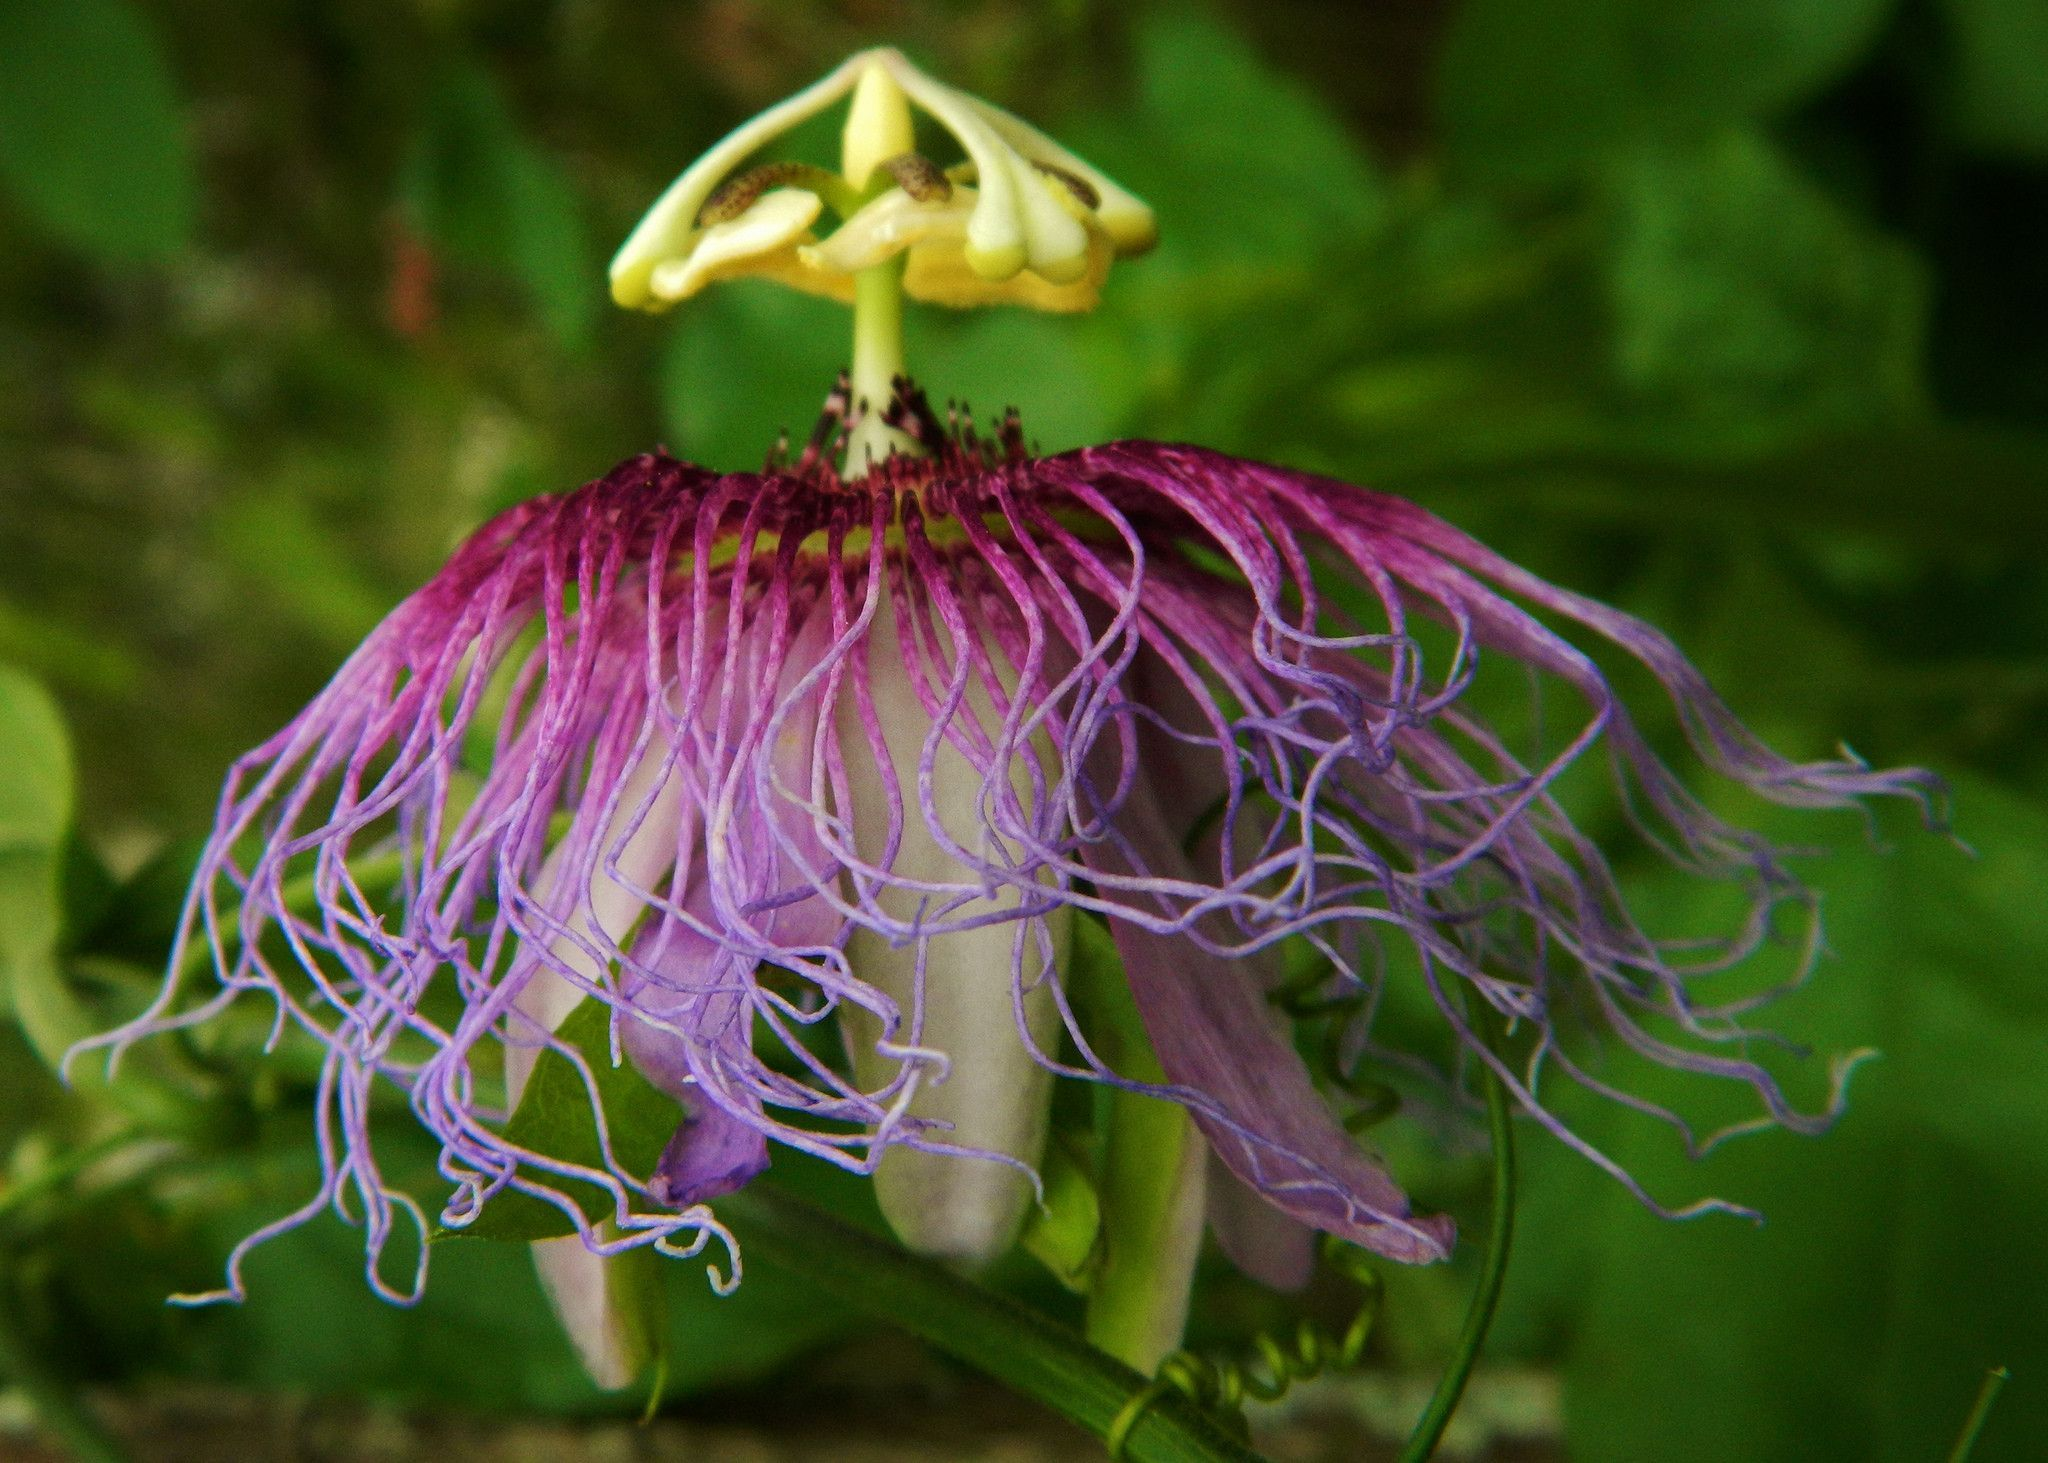 Fragrant Passion Flower Passiflora Serratifolia Is A Tropical Vine With Pleasantly Scented Flowers And Edible Frui Passion Flower Butterfly Plants Passiflora